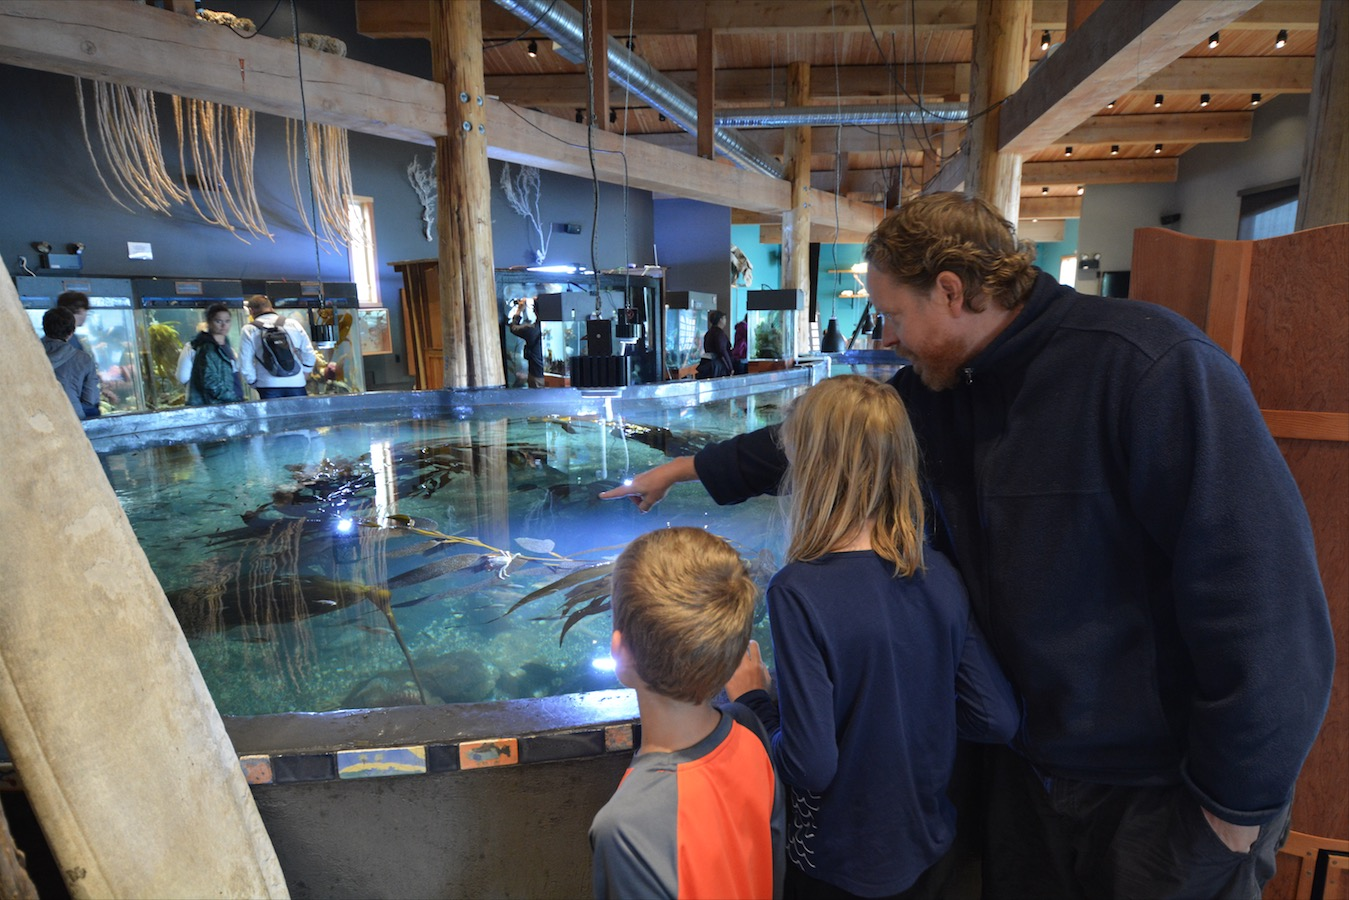 A family admires and exhibit in Ucluelet Aquarium in Ucluelet, Vancouver Island, BC